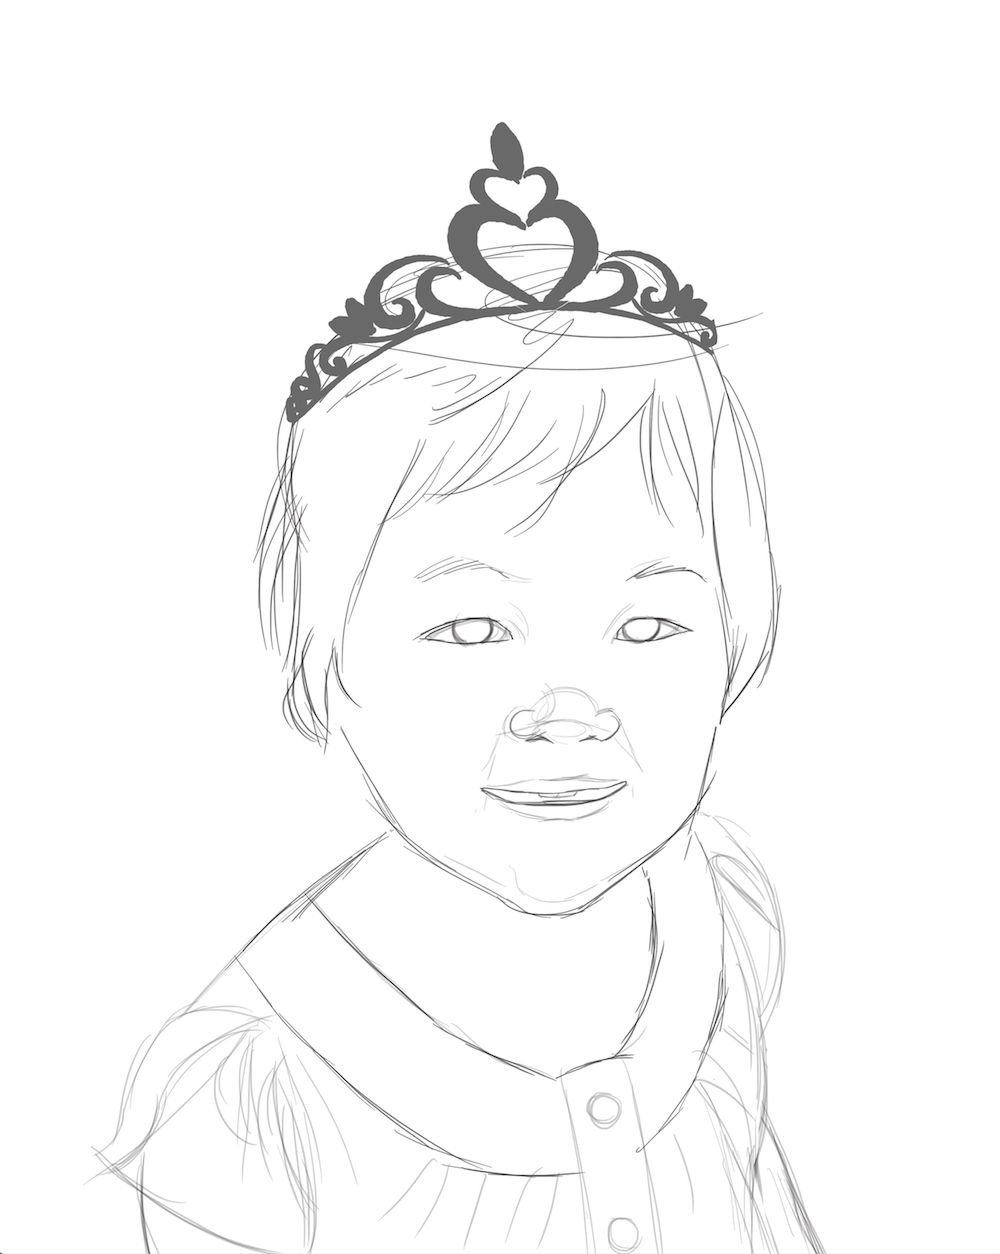 WIP of Princess Huong by Stephanie Campbell